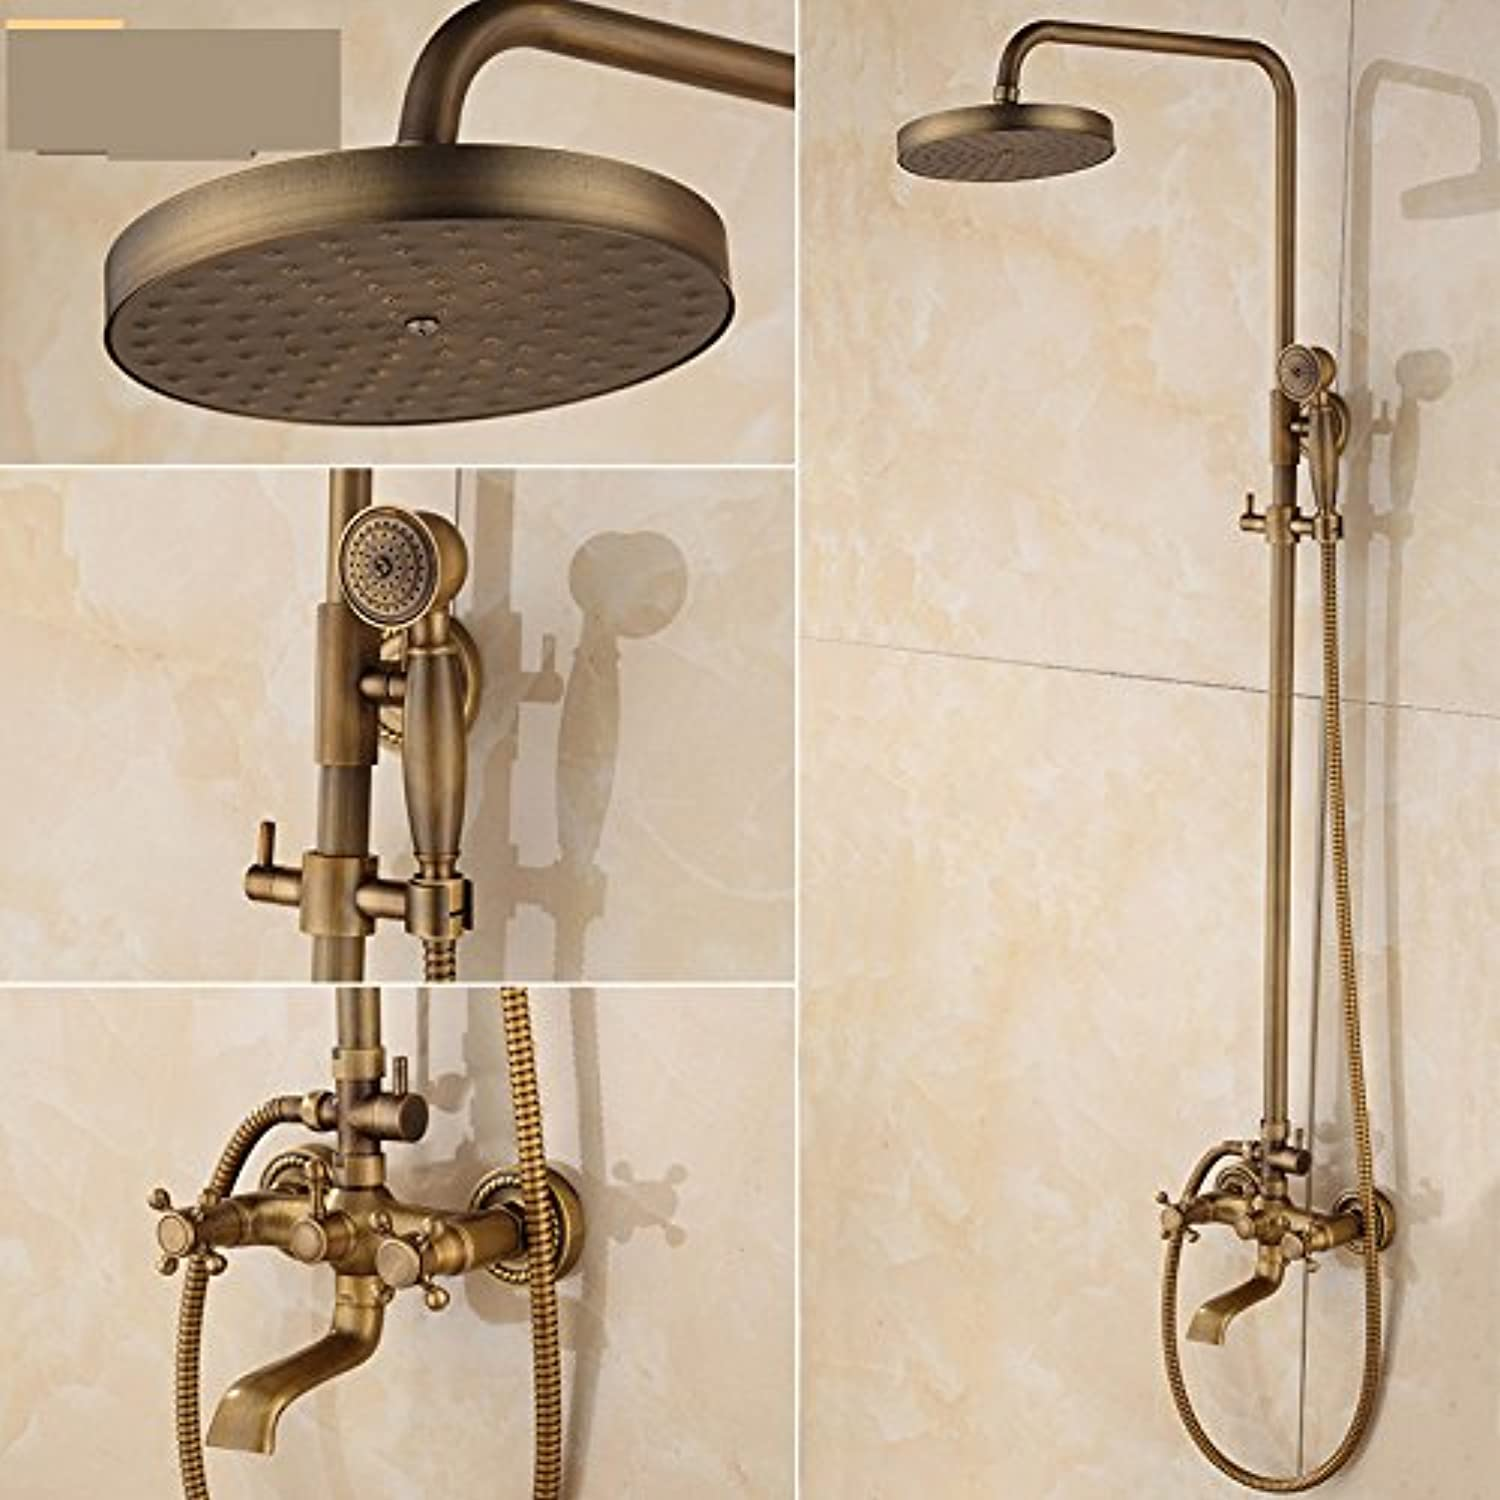 ZXYAntique shower shower, all copper accessories shower